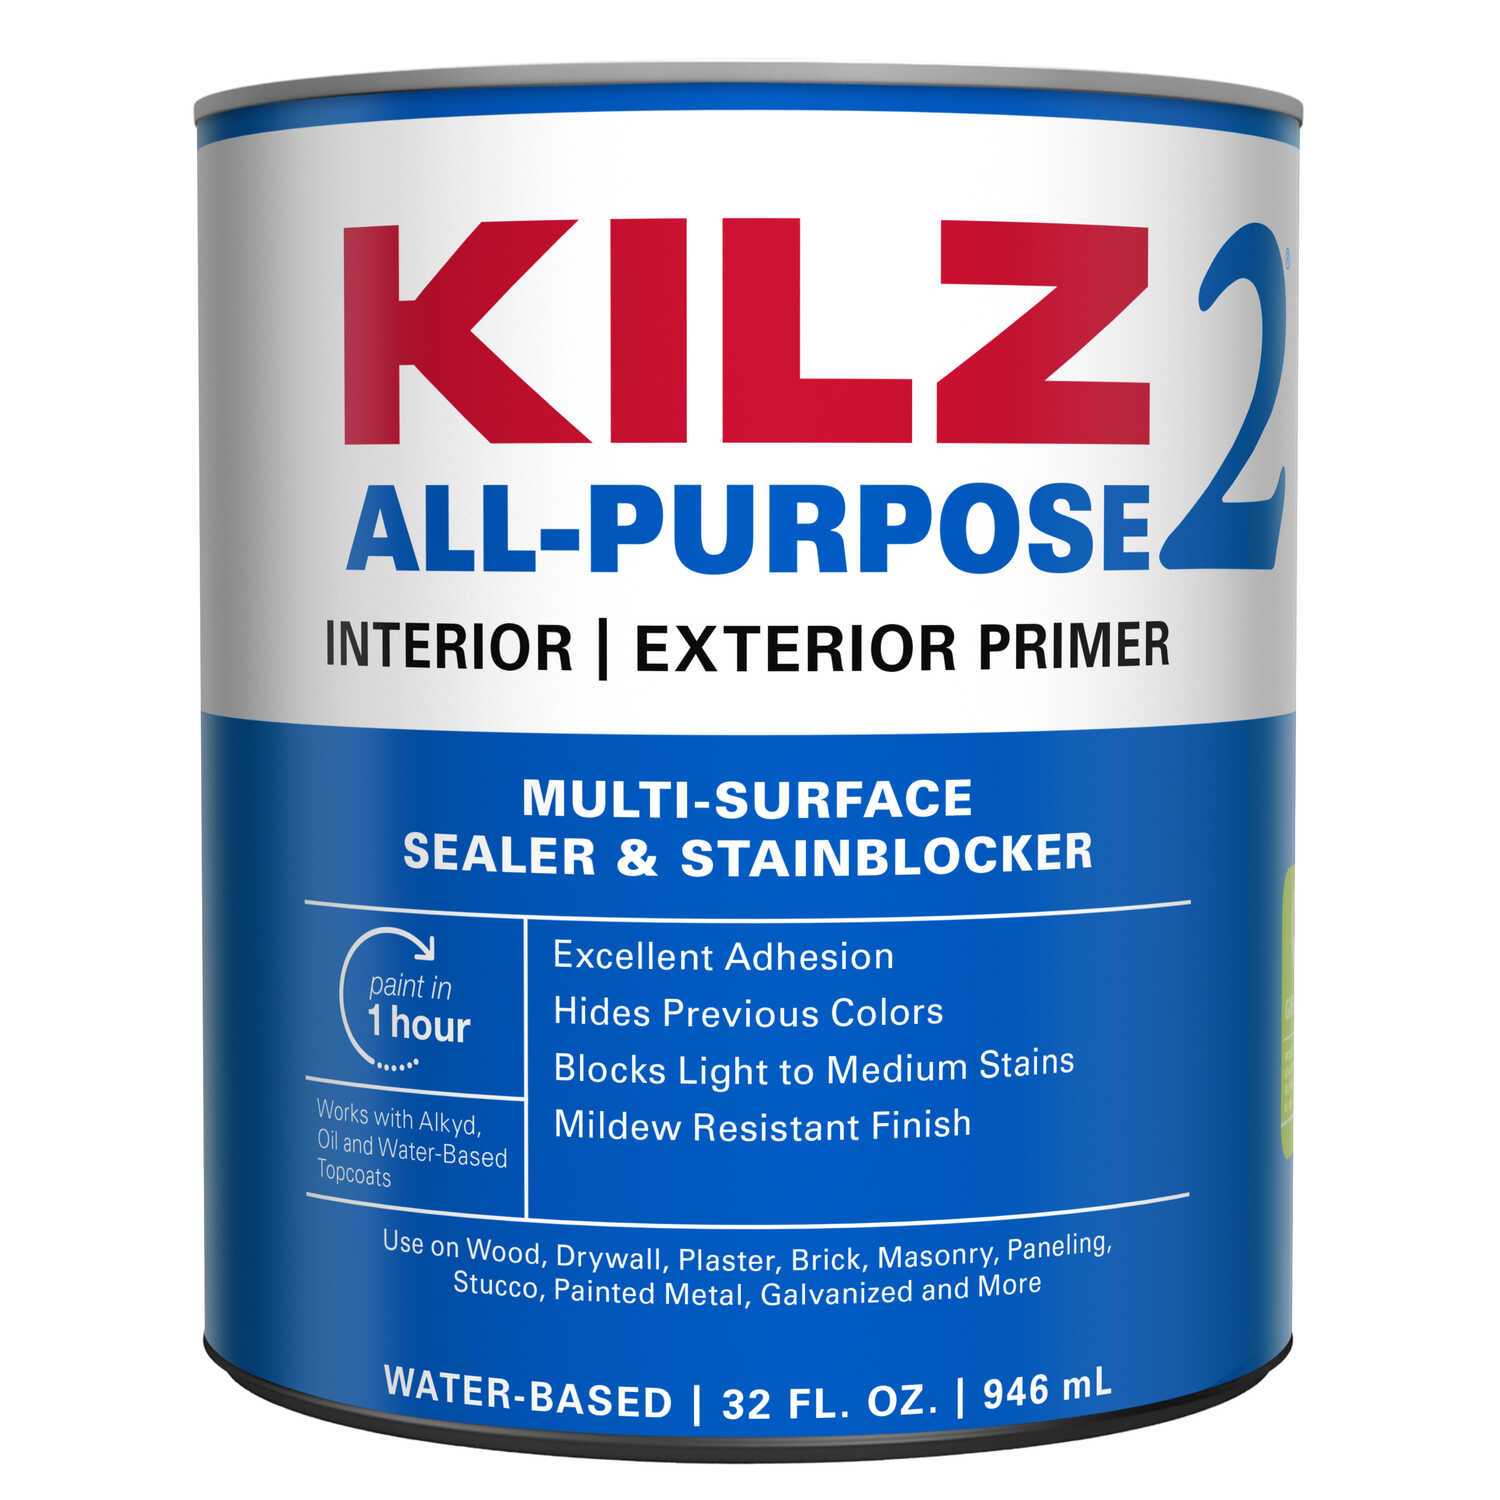 Kilz 2  Mildew-Resistant  White  Water-Based  Primer and Sealer  1 qt. For Brick, Painted Metal, Glo